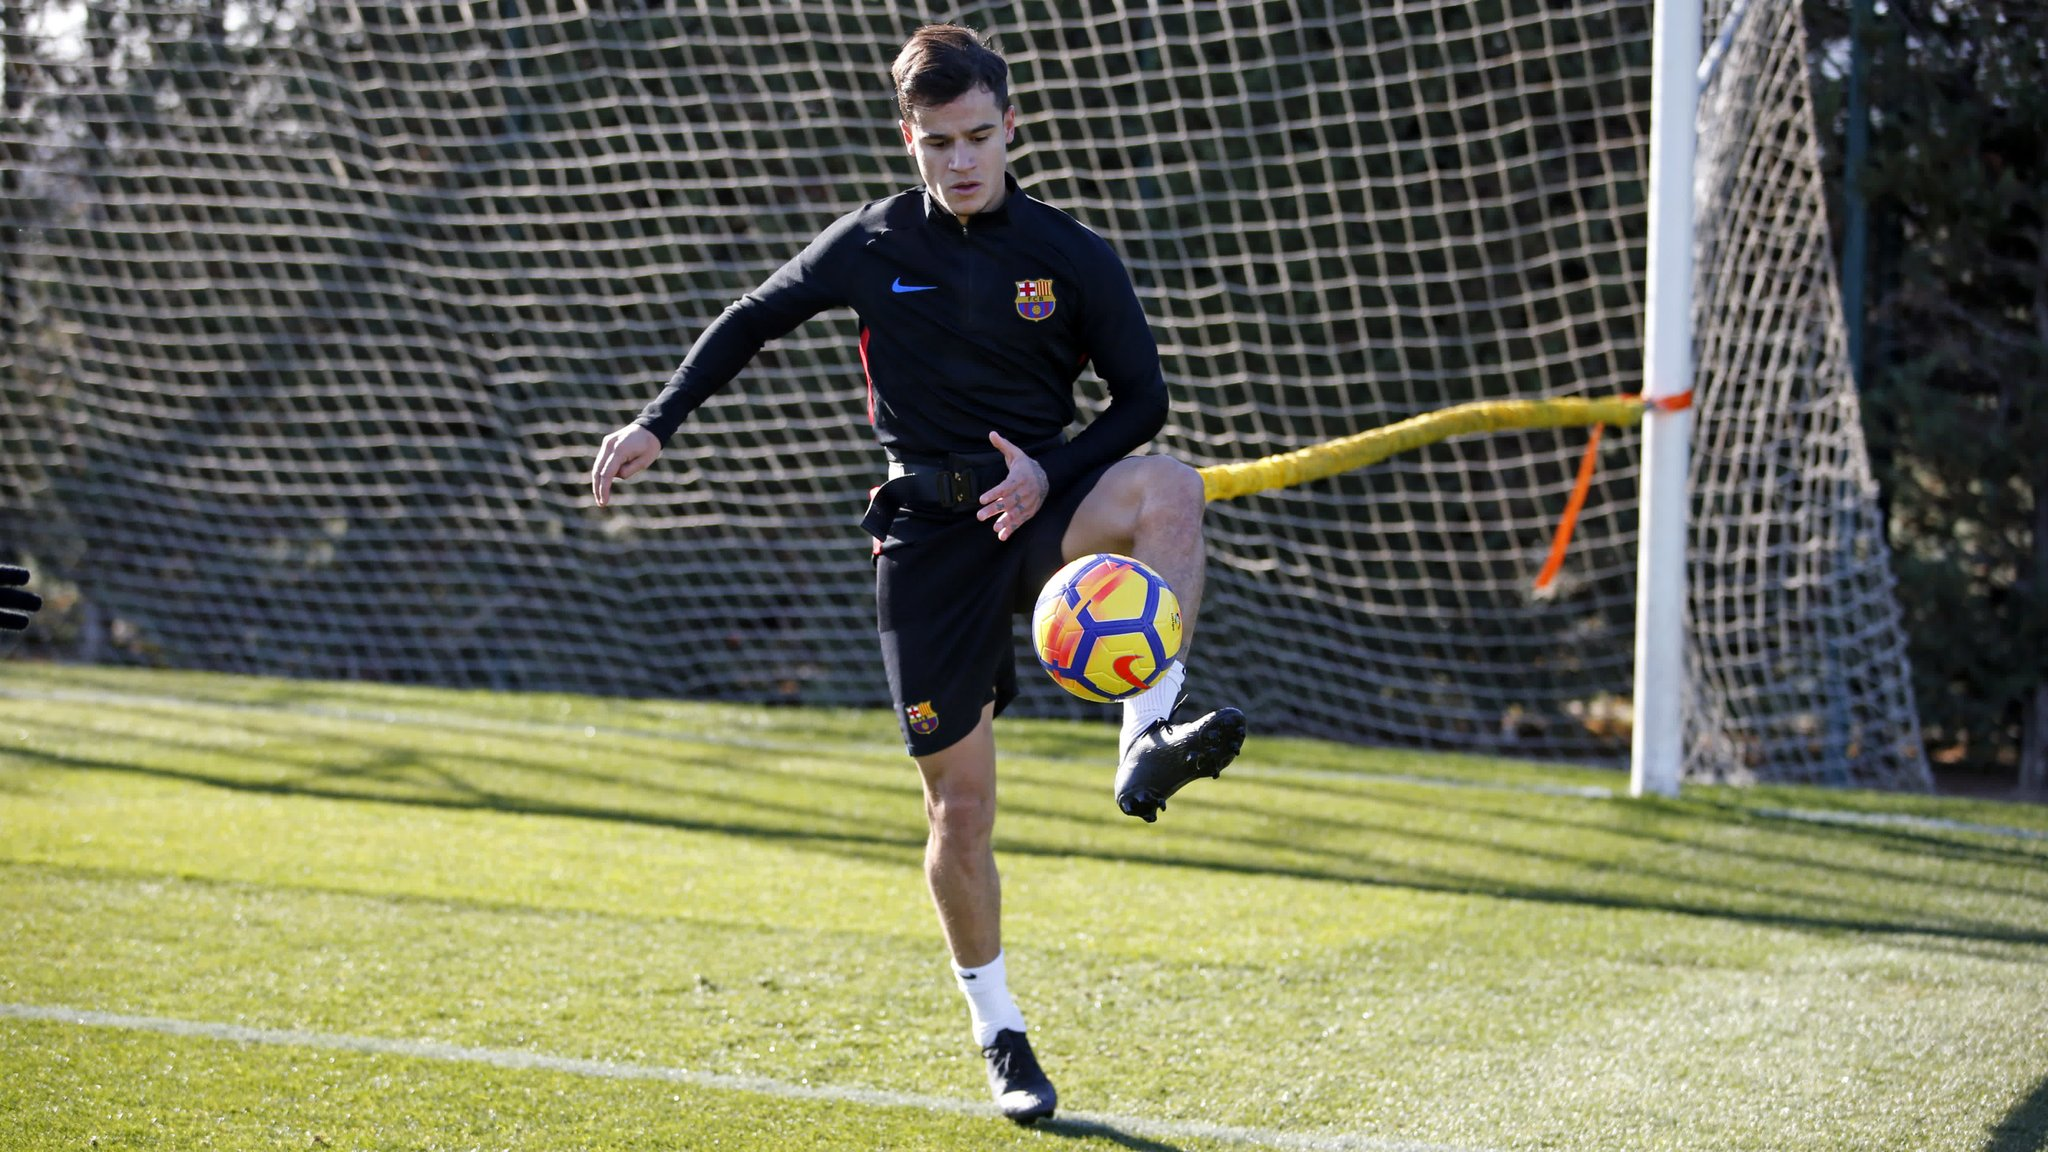 �� @Phil_Coutinho incorporates the ball into his recovery work ���� #ForçaBarça https://t.co/TGfb5NqjKq